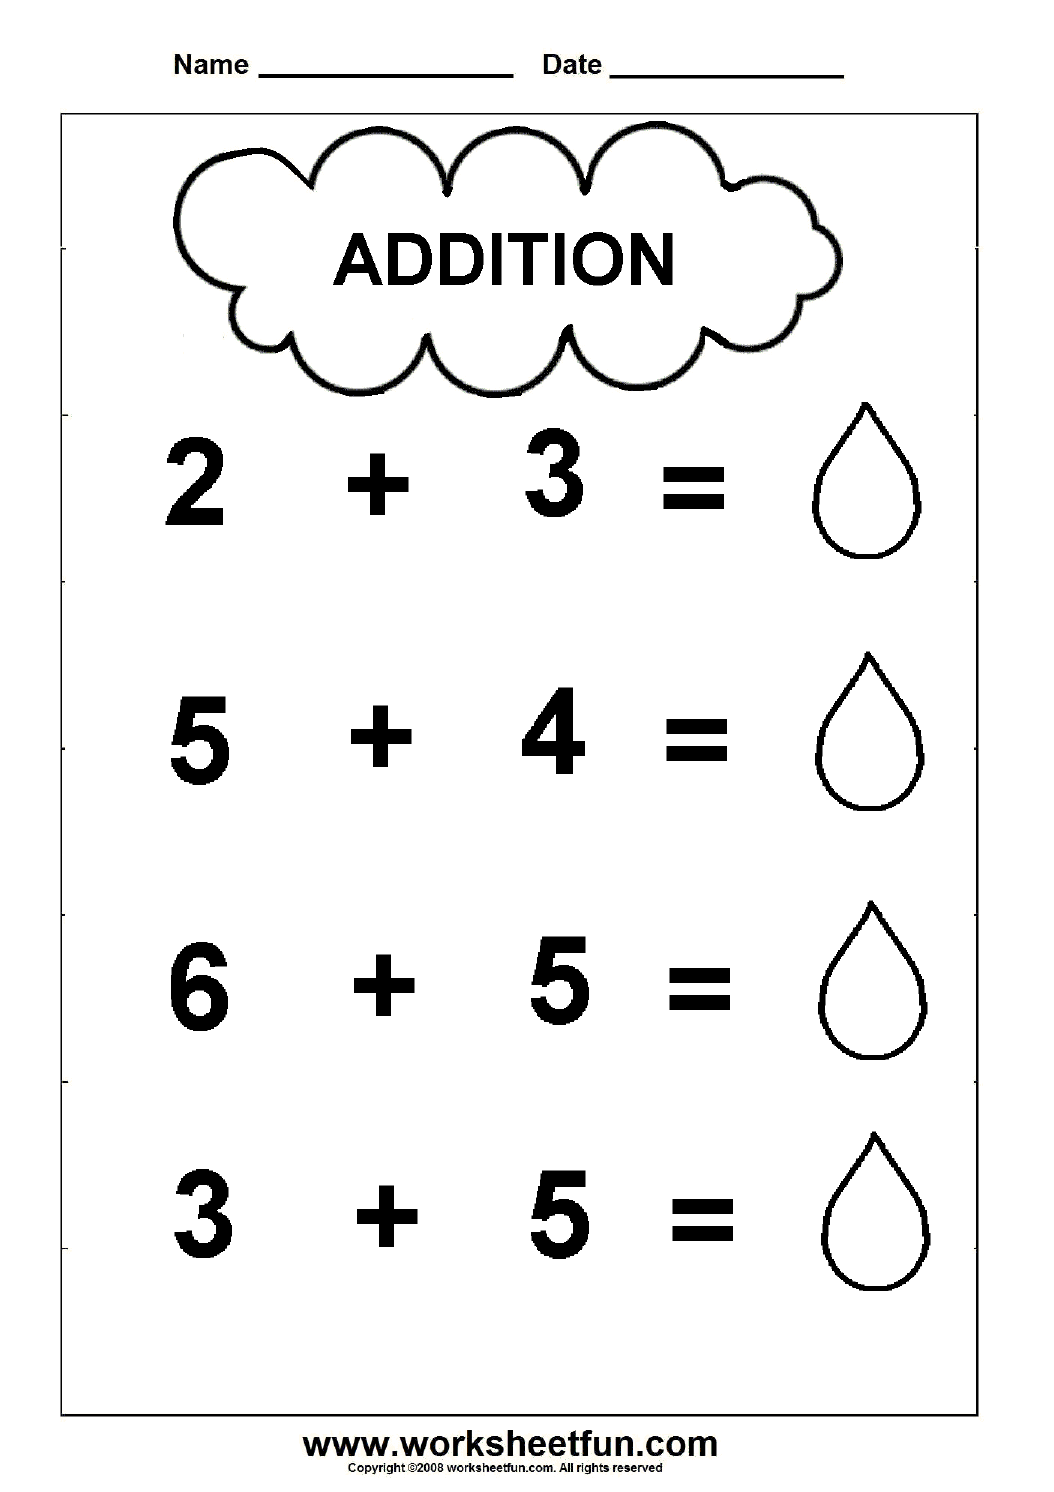 Addition 2 Worksheets Kindergarten Worksheets – Simple Math Worksheets Printable